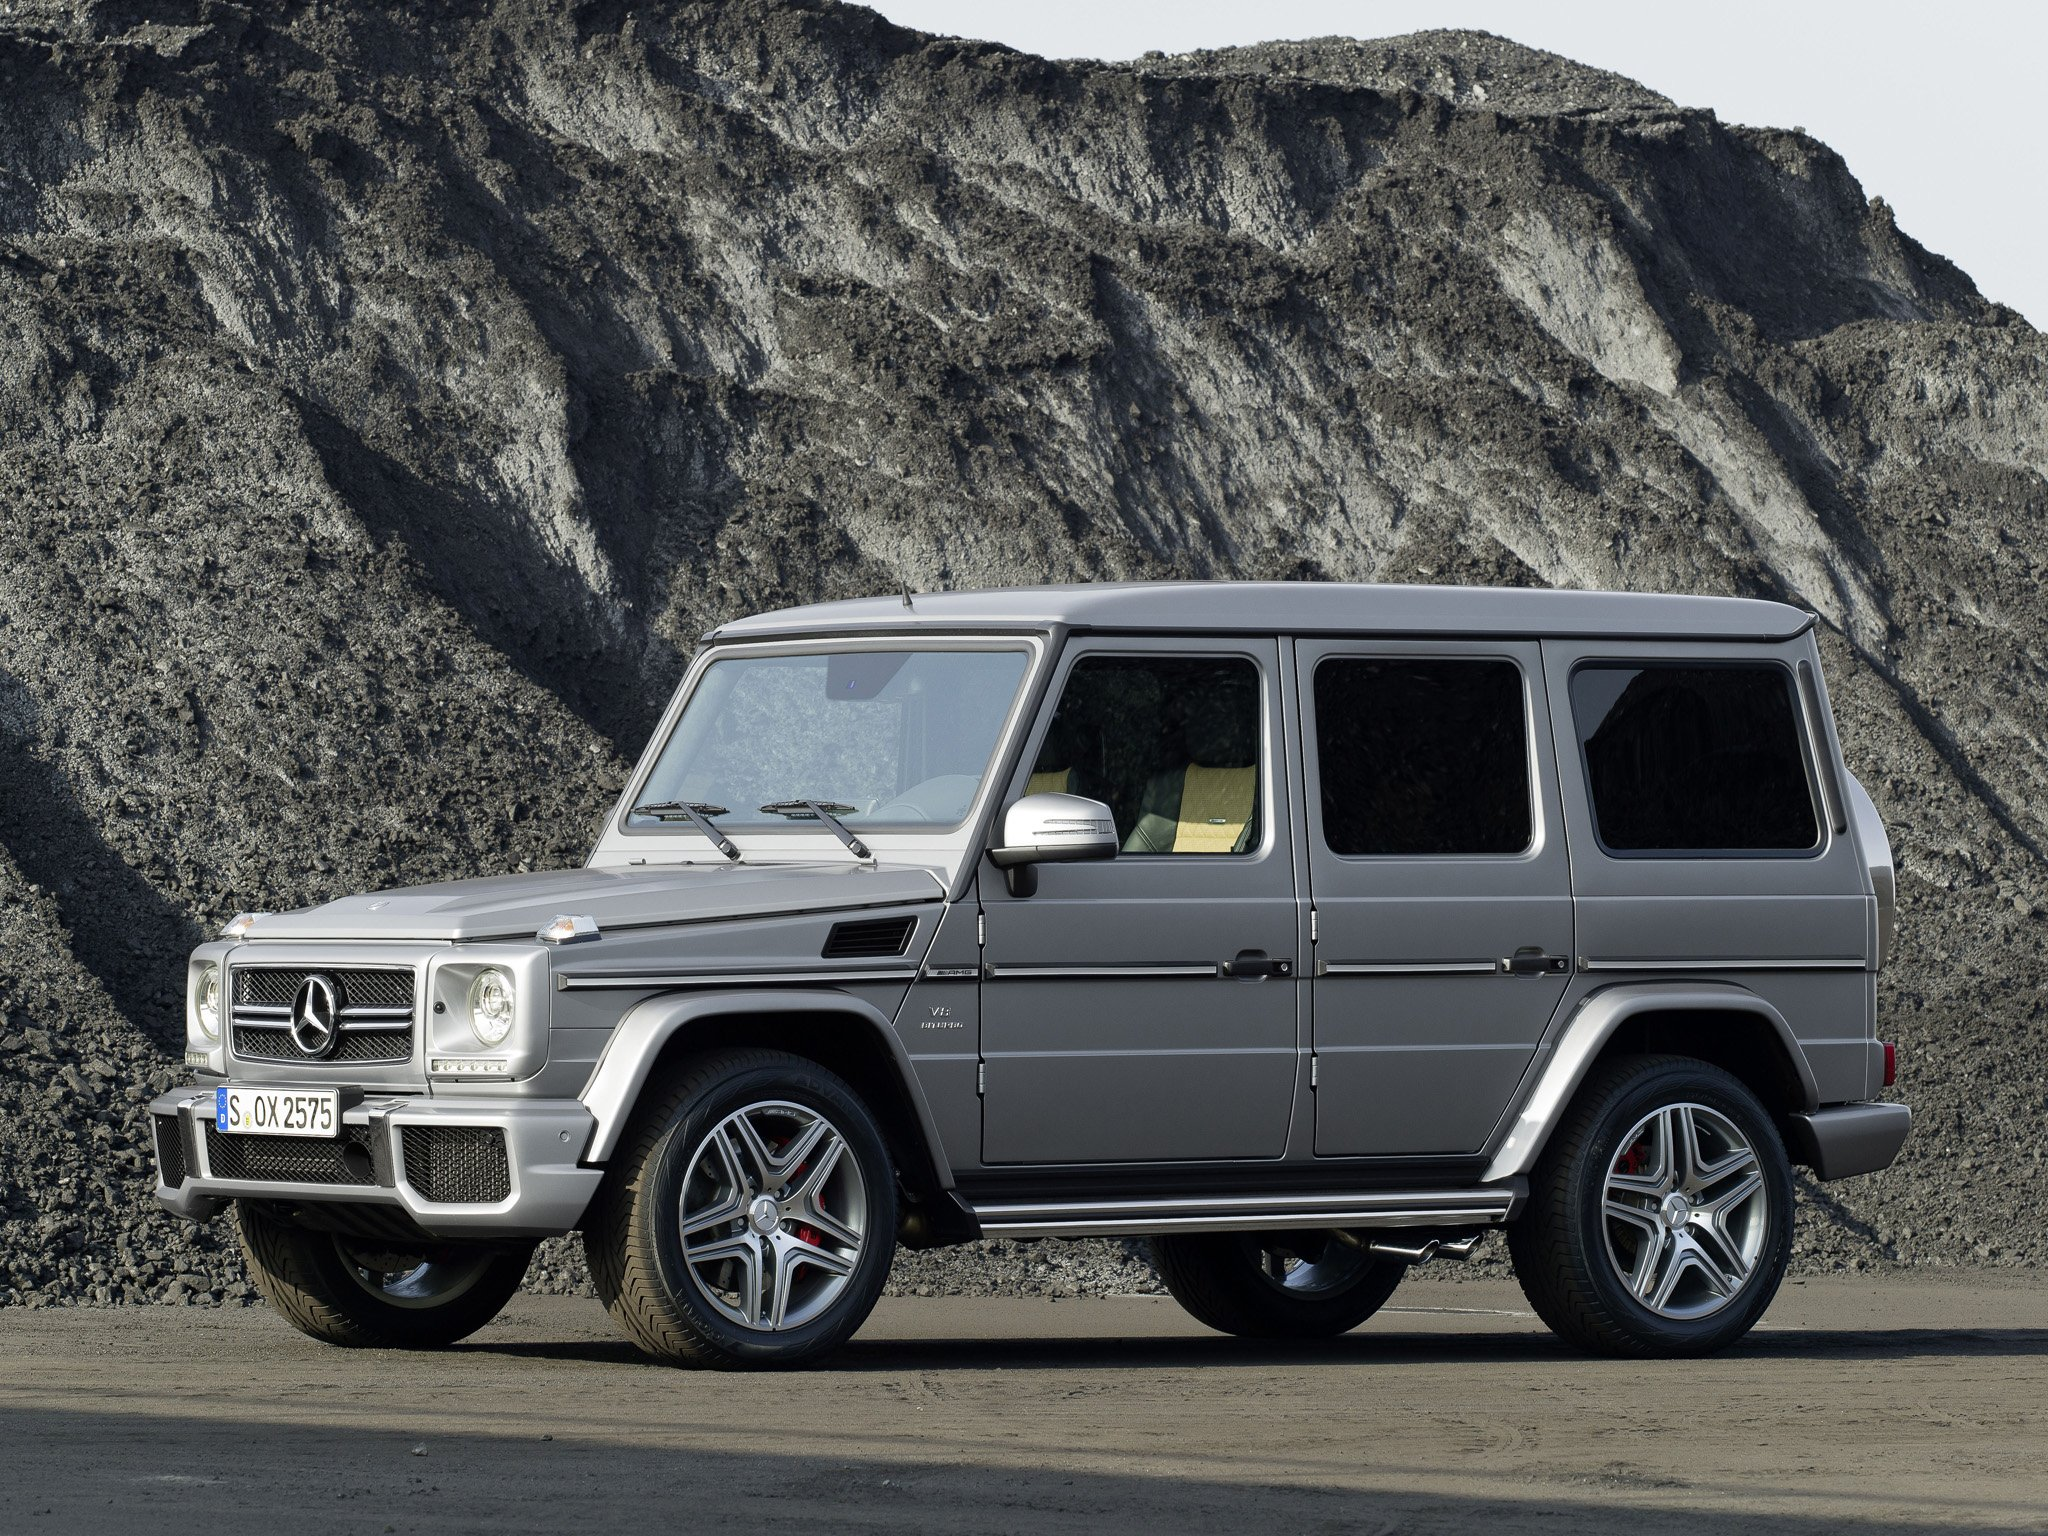 mercedes benz g63 amg w463 2012 cars 4wd 4x4 all road. Black Bedroom Furniture Sets. Home Design Ideas